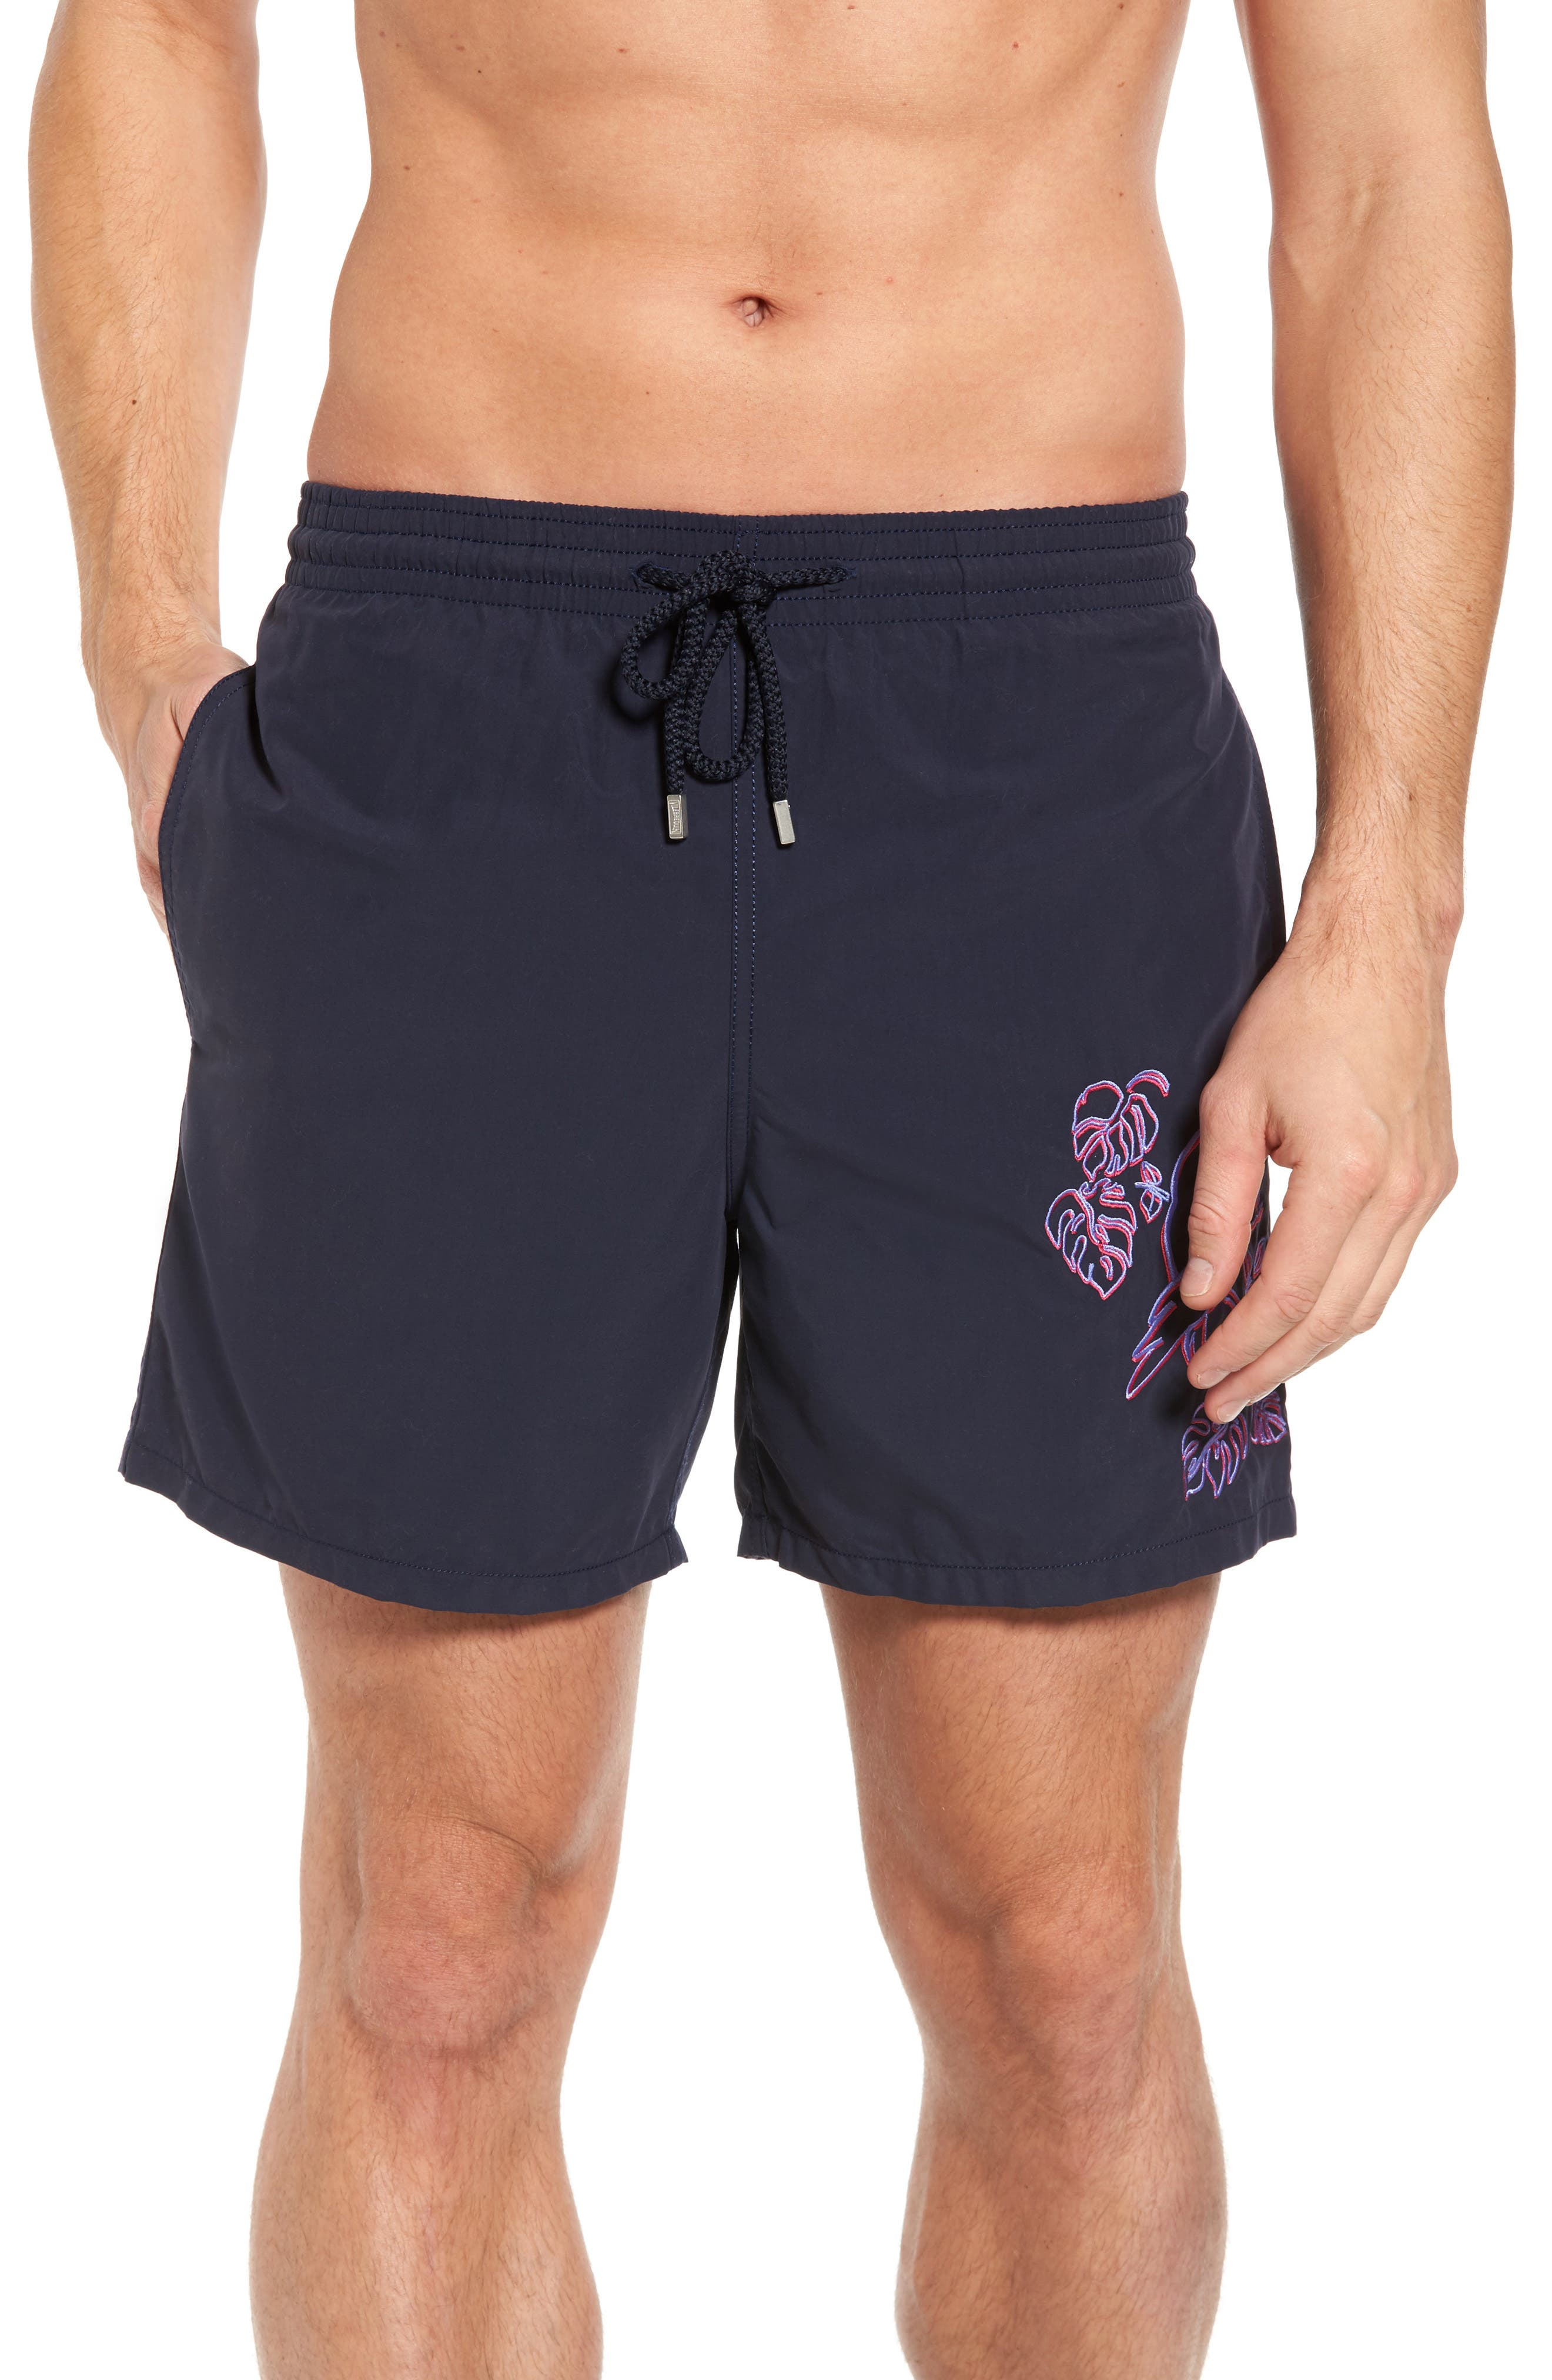 Embroidered Cockatoo Swim Trunks,                         Main,                         color, Navy